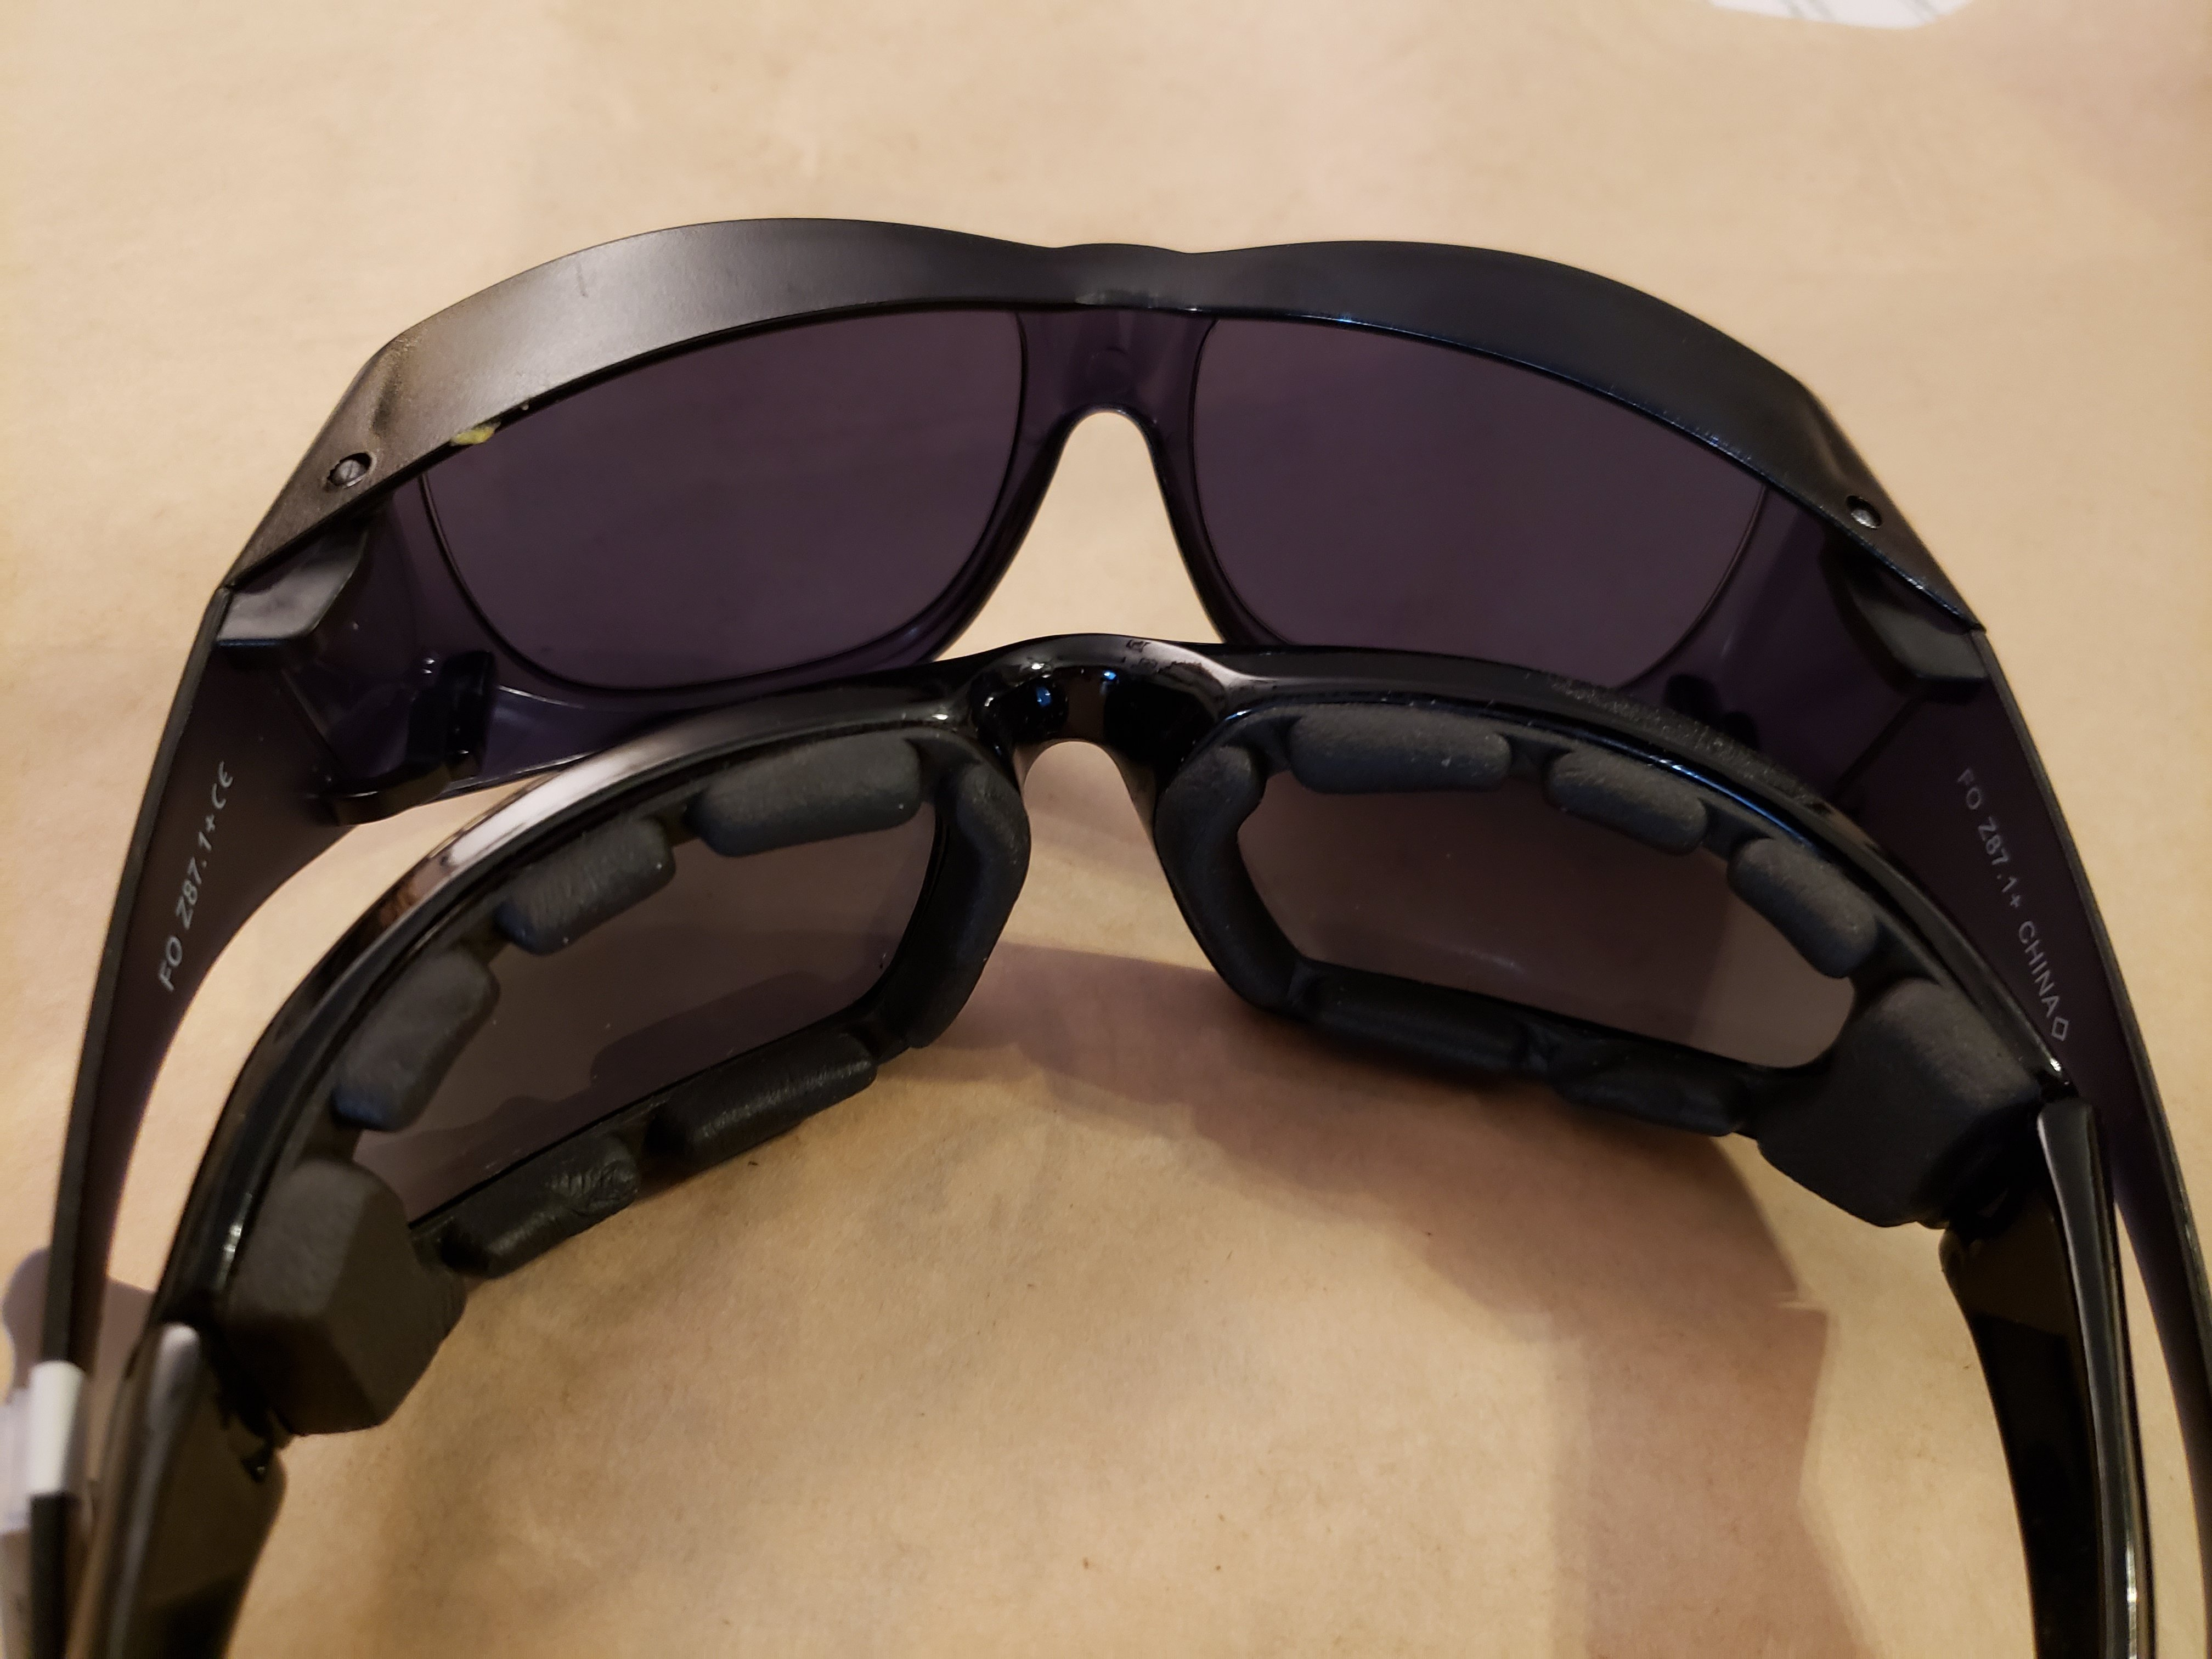 foam motorcycle goggle glasses and cataract surgery sunglasses